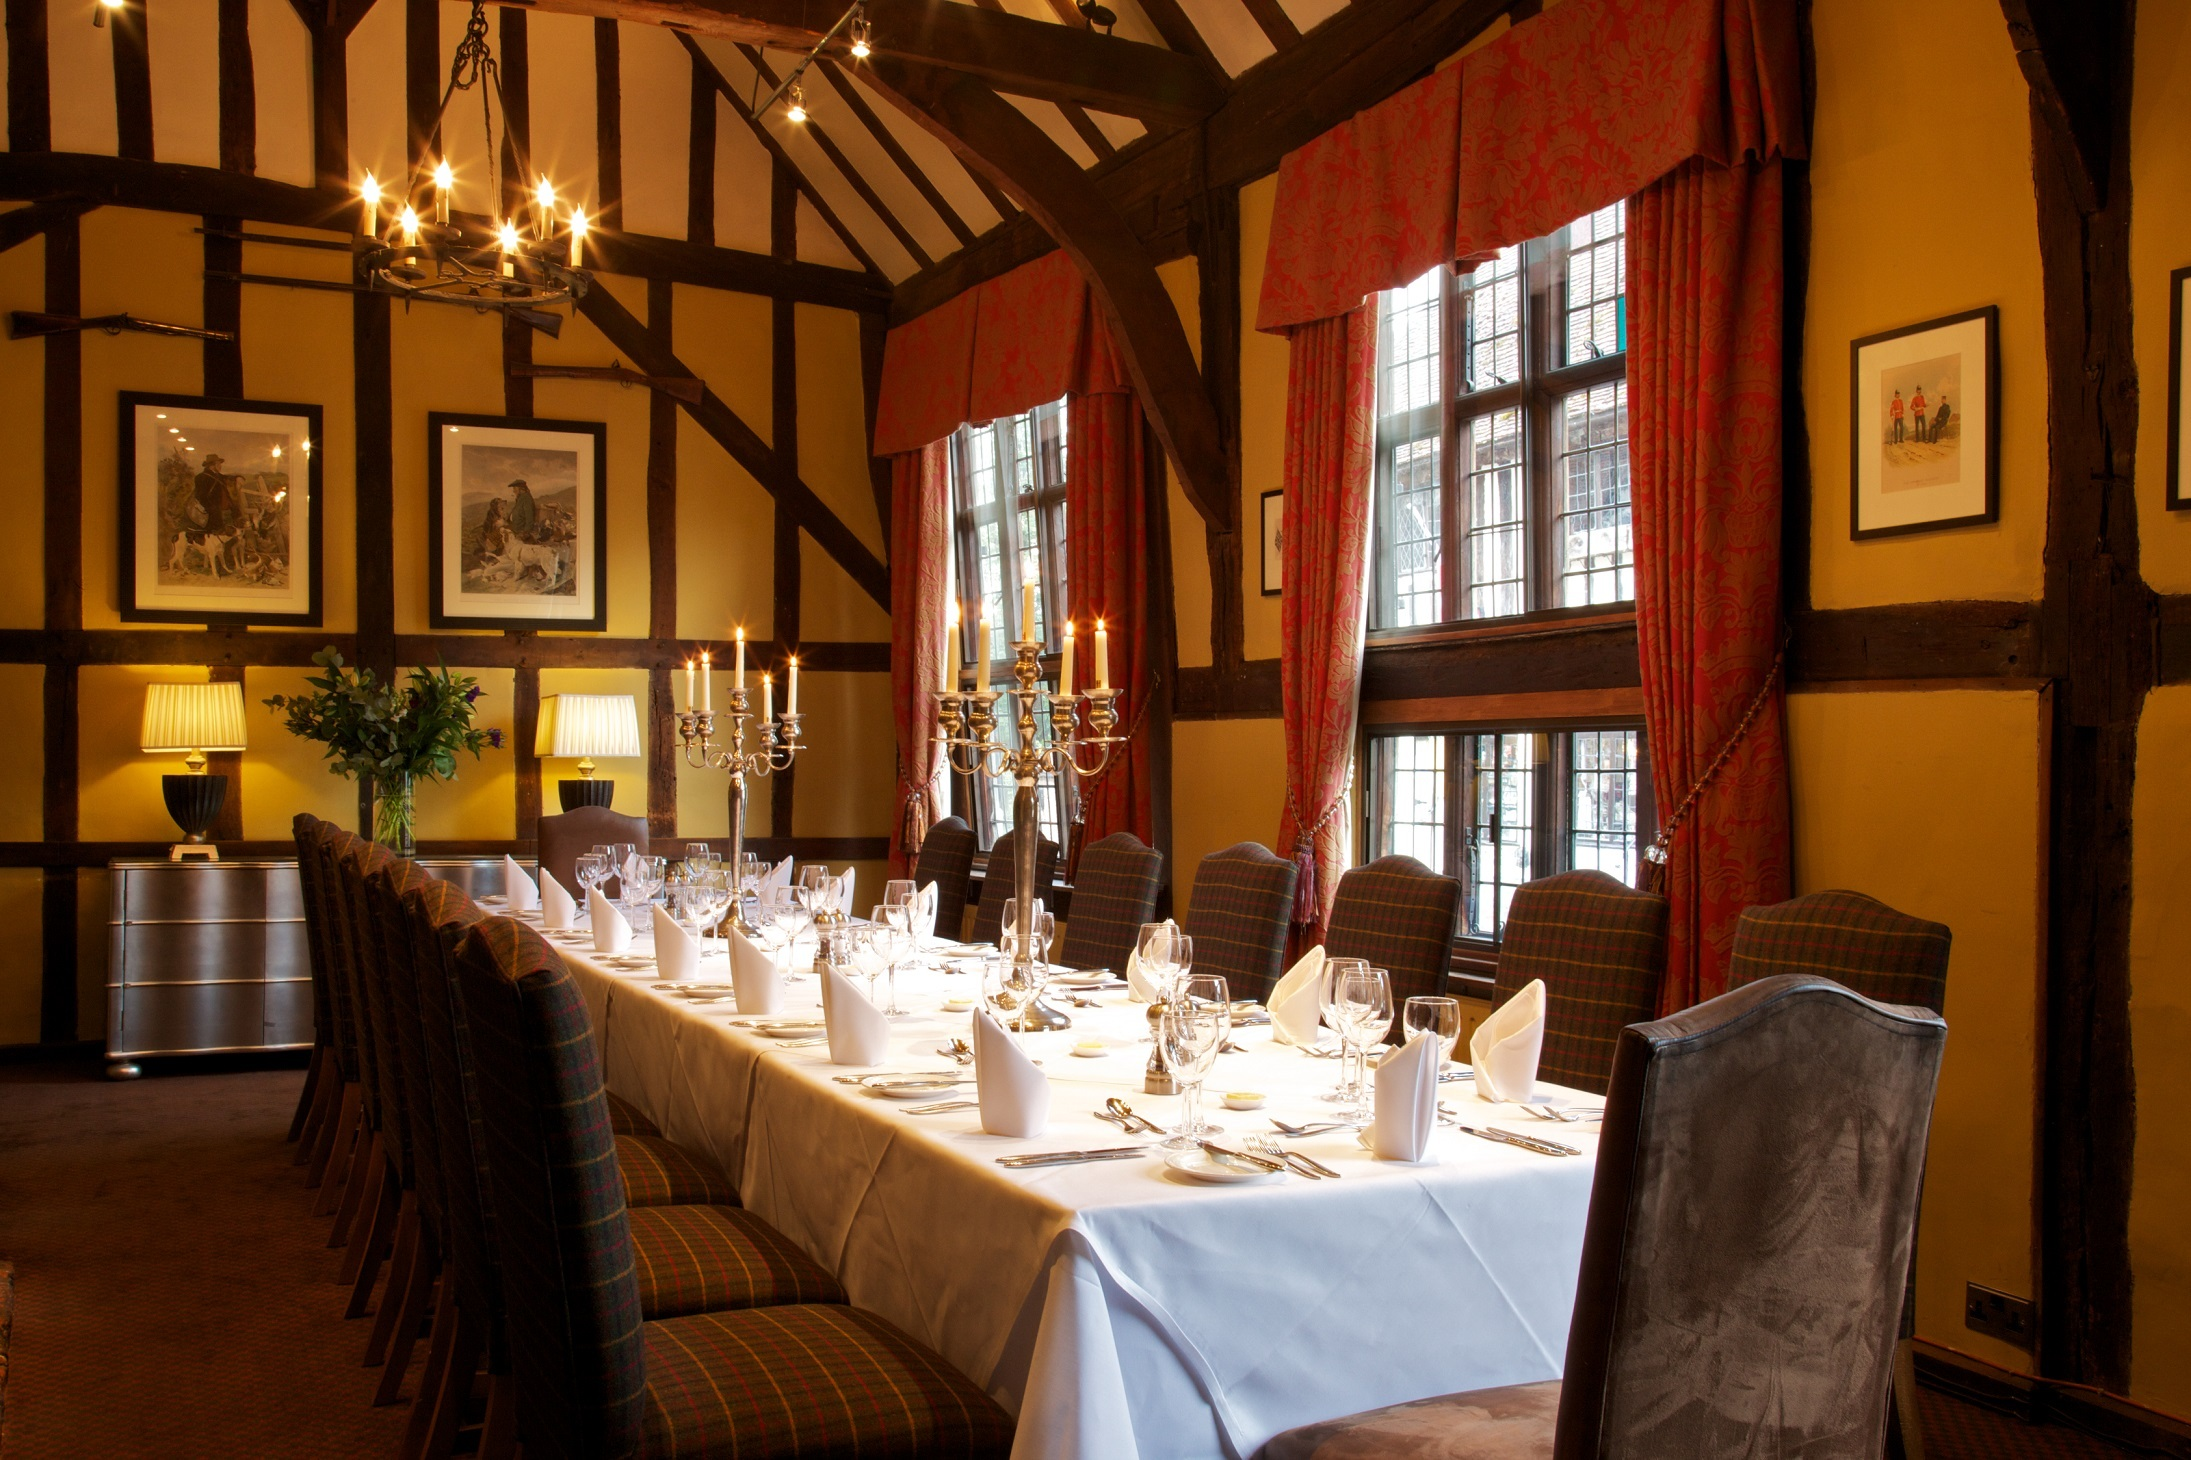 Enjoy autumn wine tasting dinners in historic Lavenham